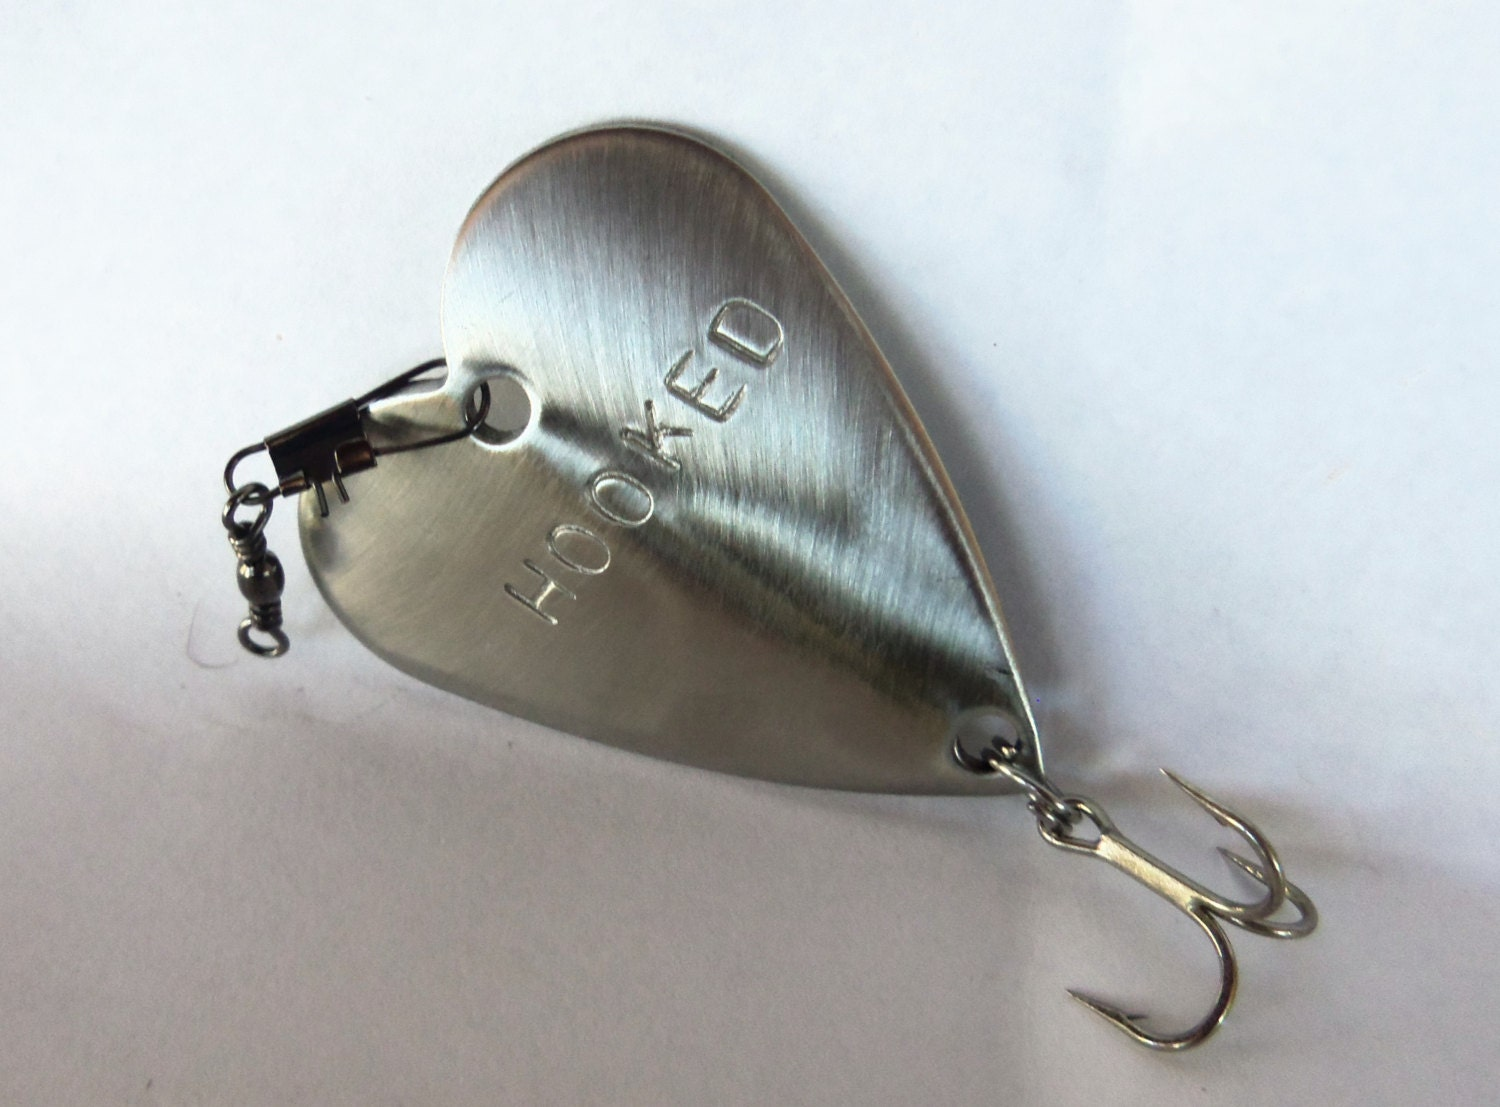 Fishing unique father 39 s day gift hooked heart fish lure for Unique fishing gifts